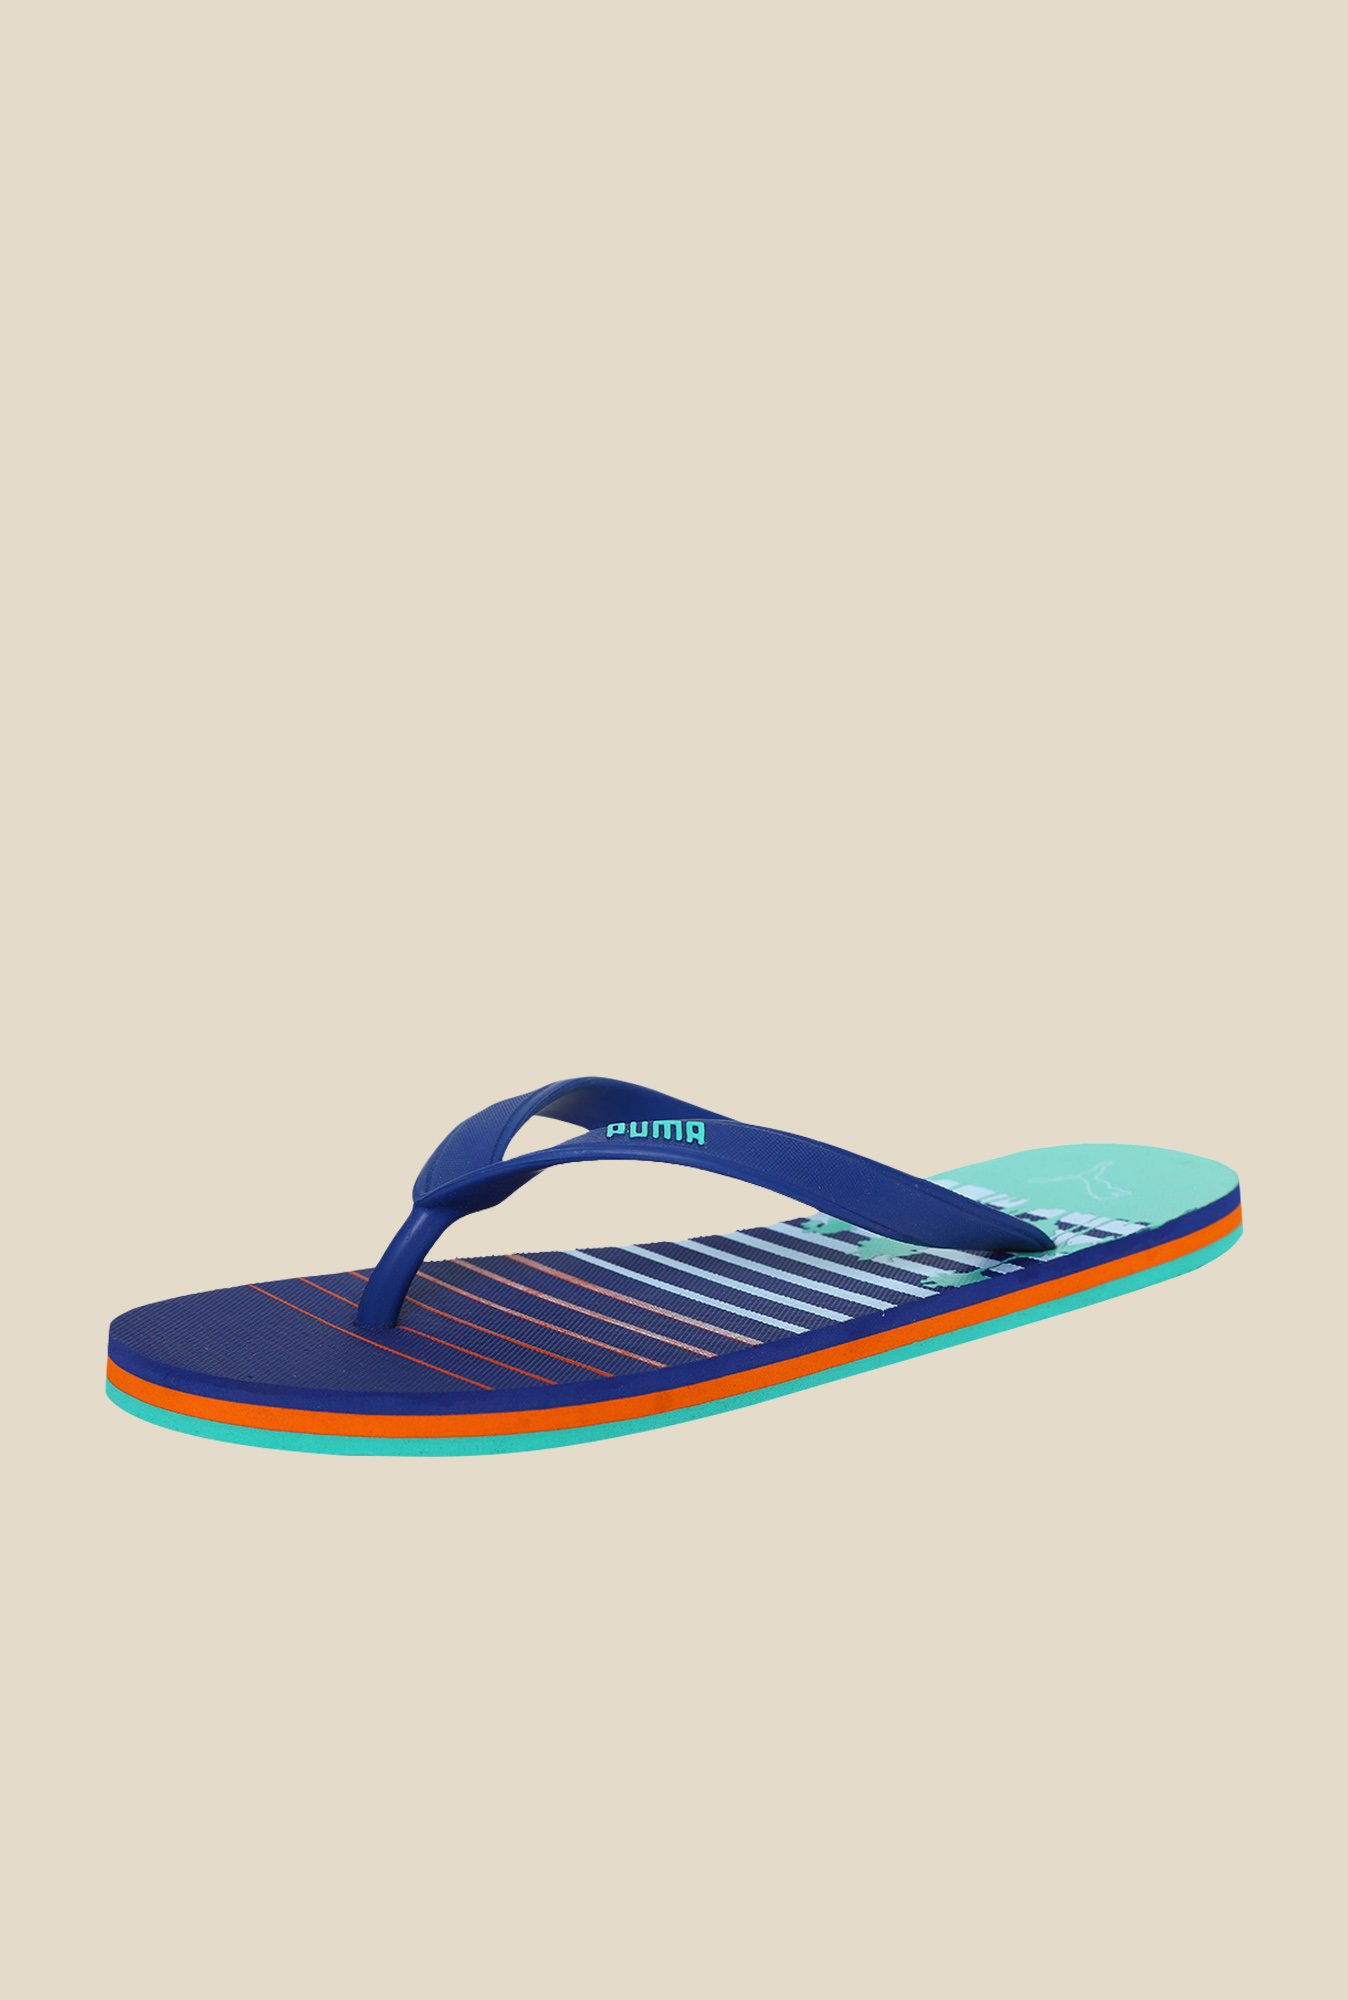 Puma Grace DP Monaco Blue & Mint Leaf Flip Flops